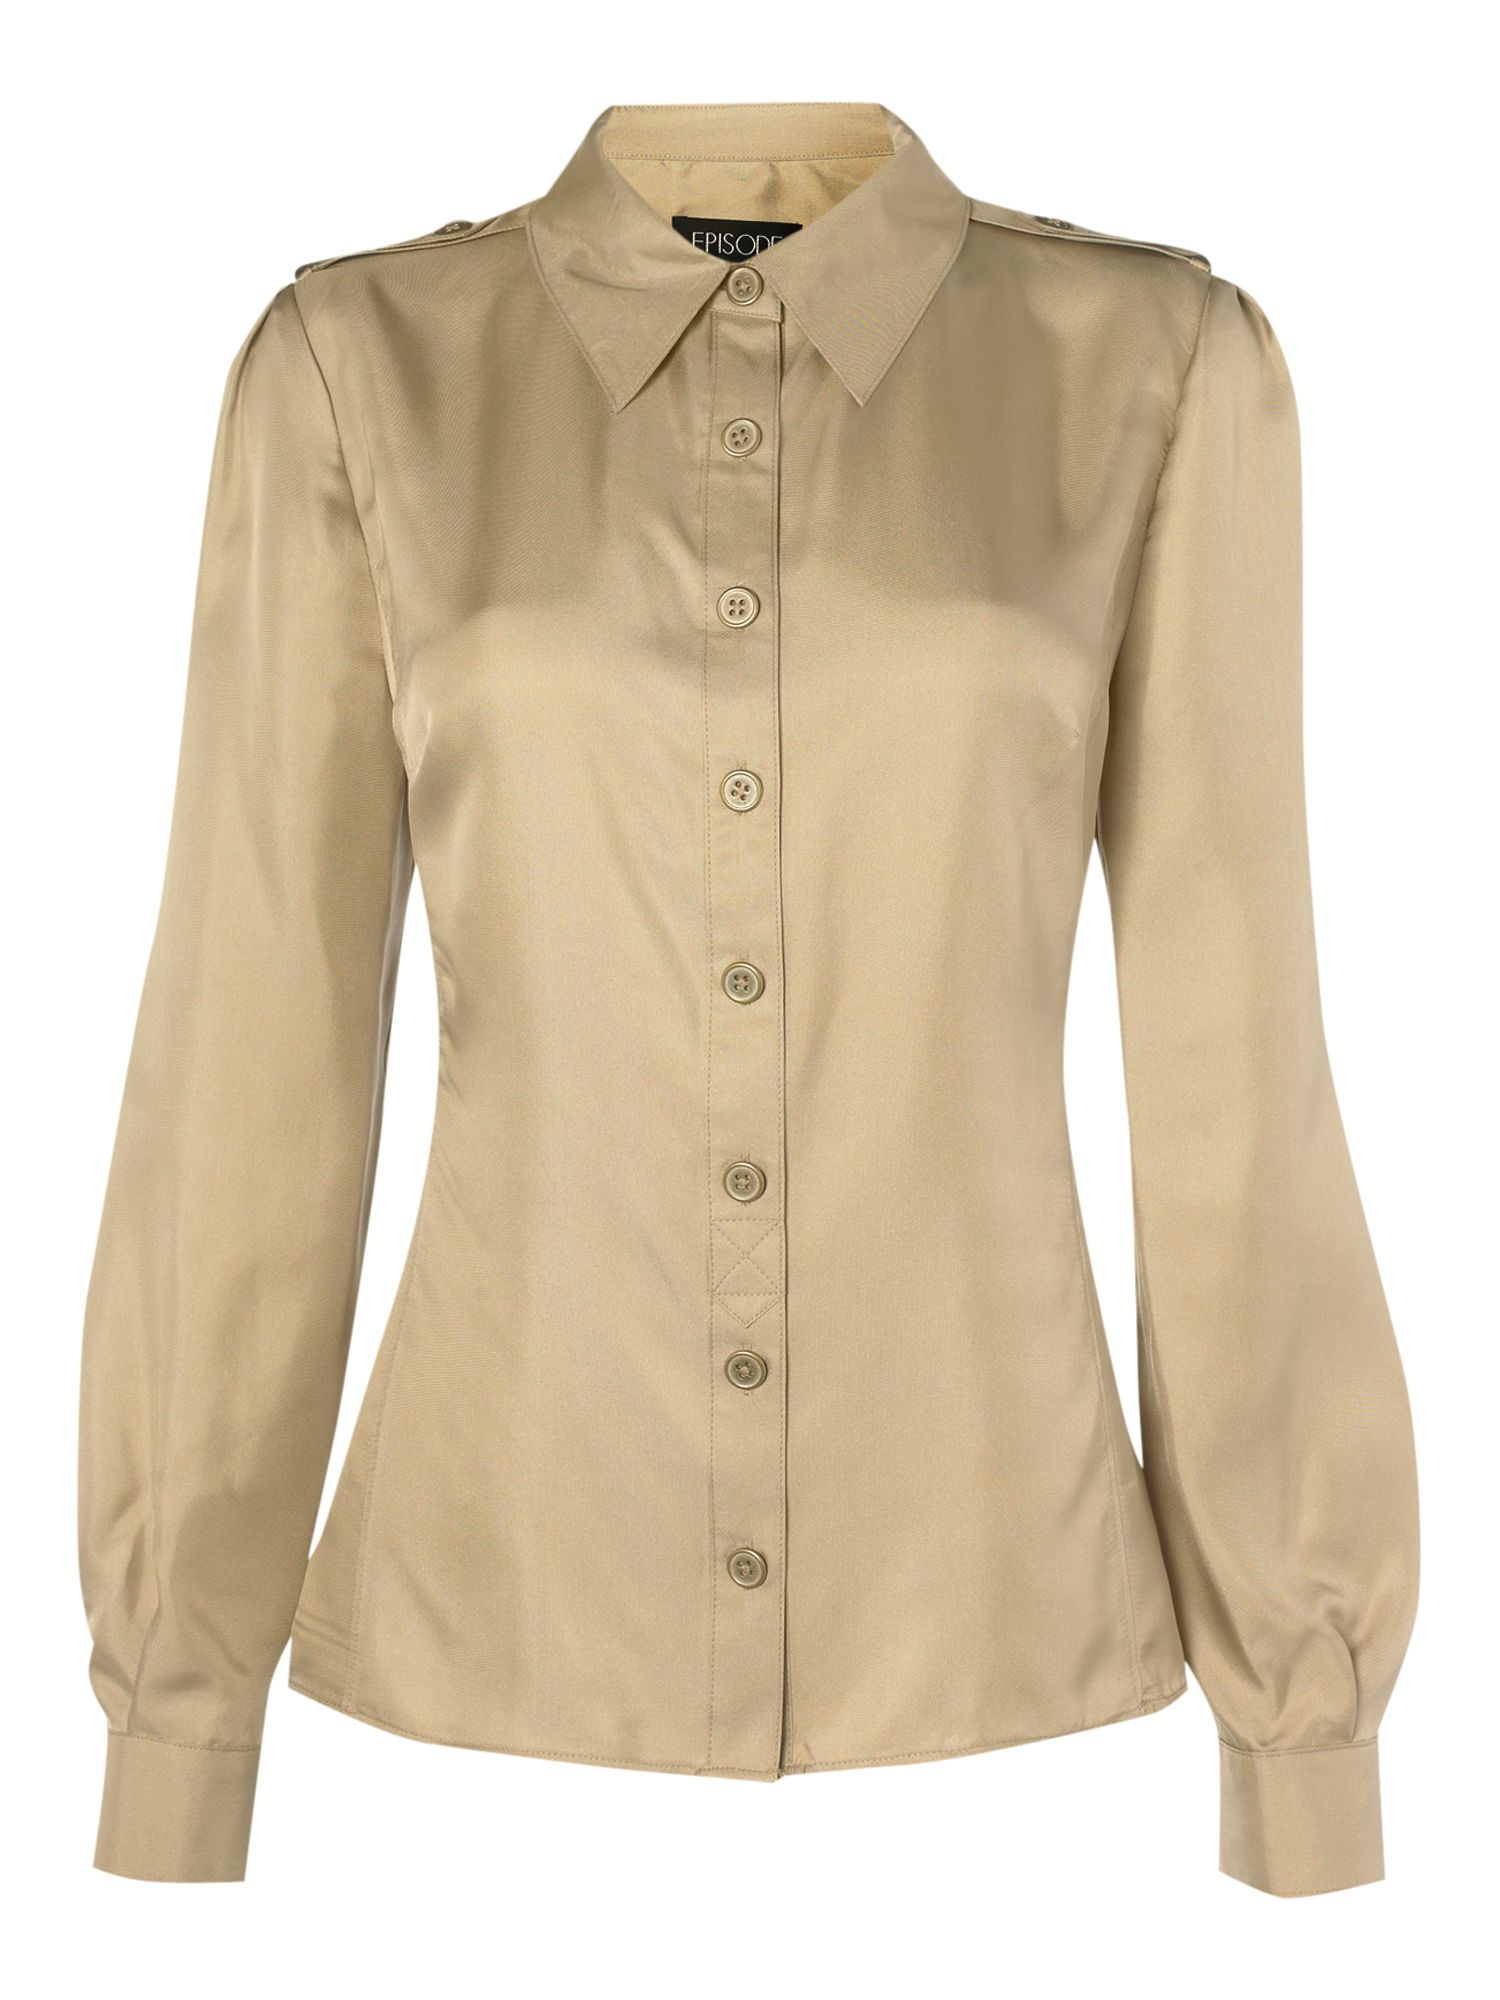 Episode Womens Episode Long sleeve military blouse, product image